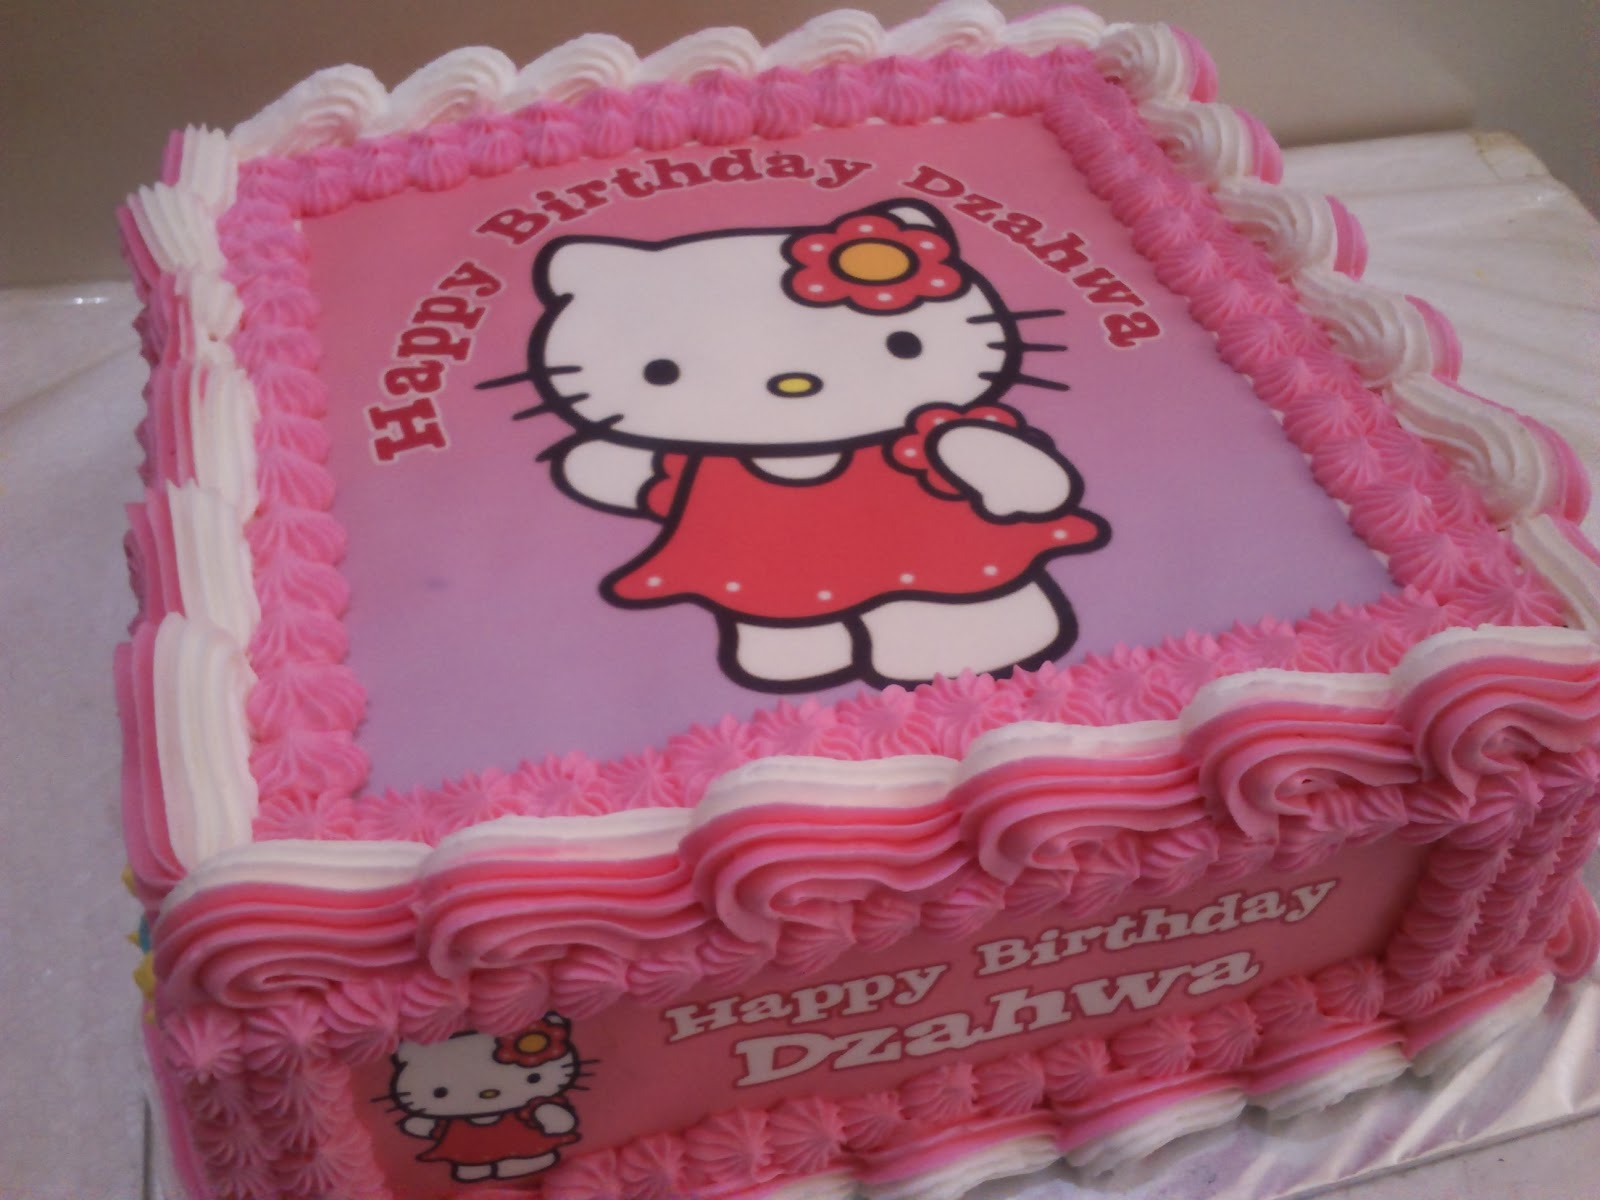 Toko Kue Bolu Enak Hello Kitty Edible Image Birthday Cake